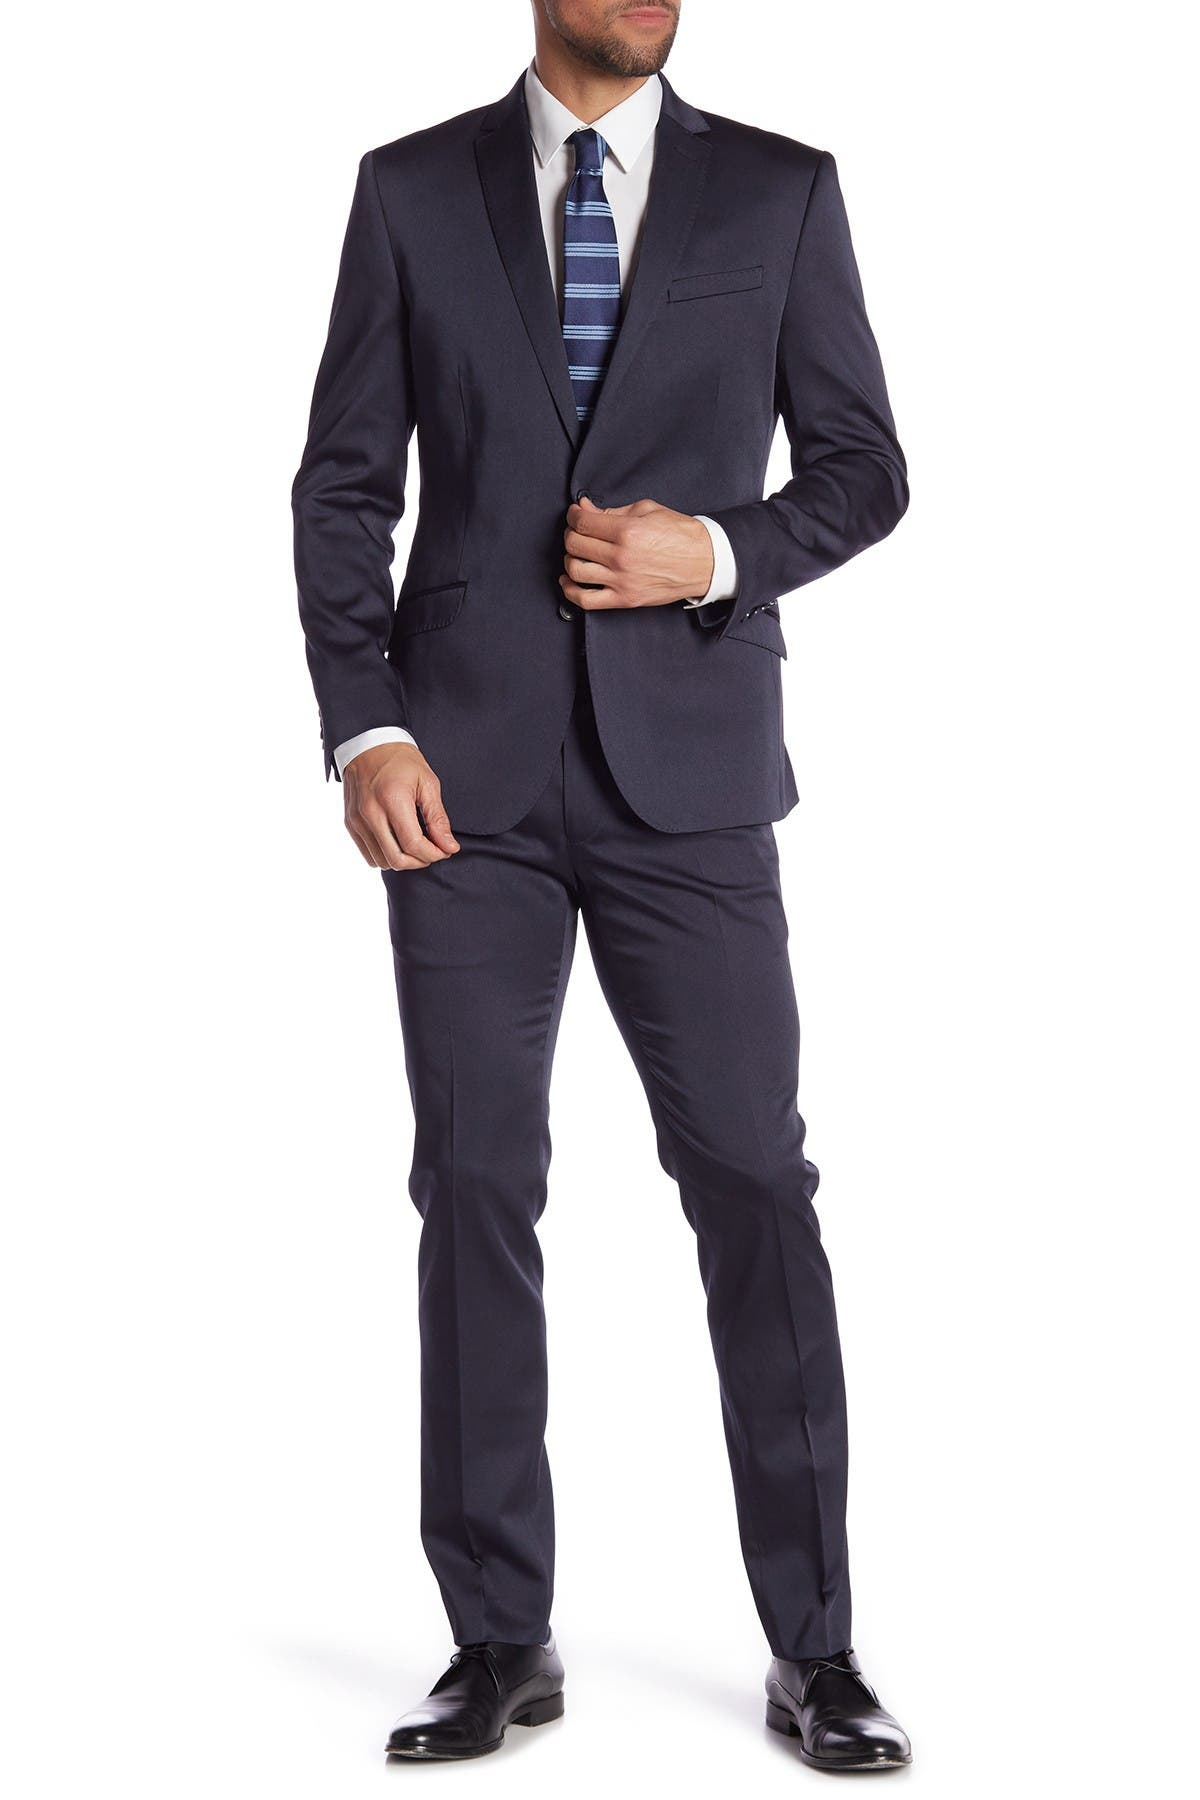 Image of Kenneth Cole Reaction Navy Solid Two Button Notch Lapel Slim Fit Suit